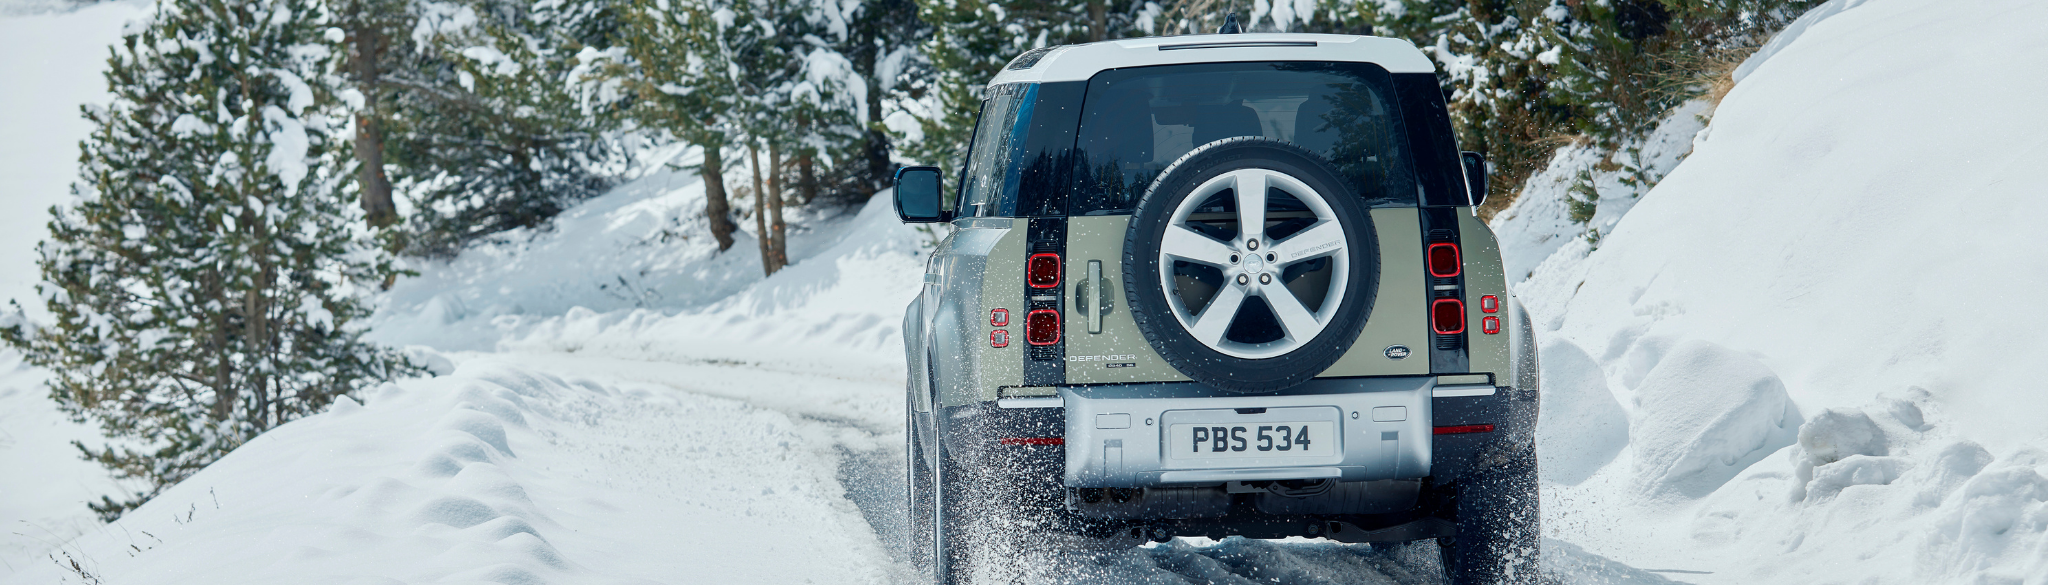 Land Rover Defender Driving In Snow